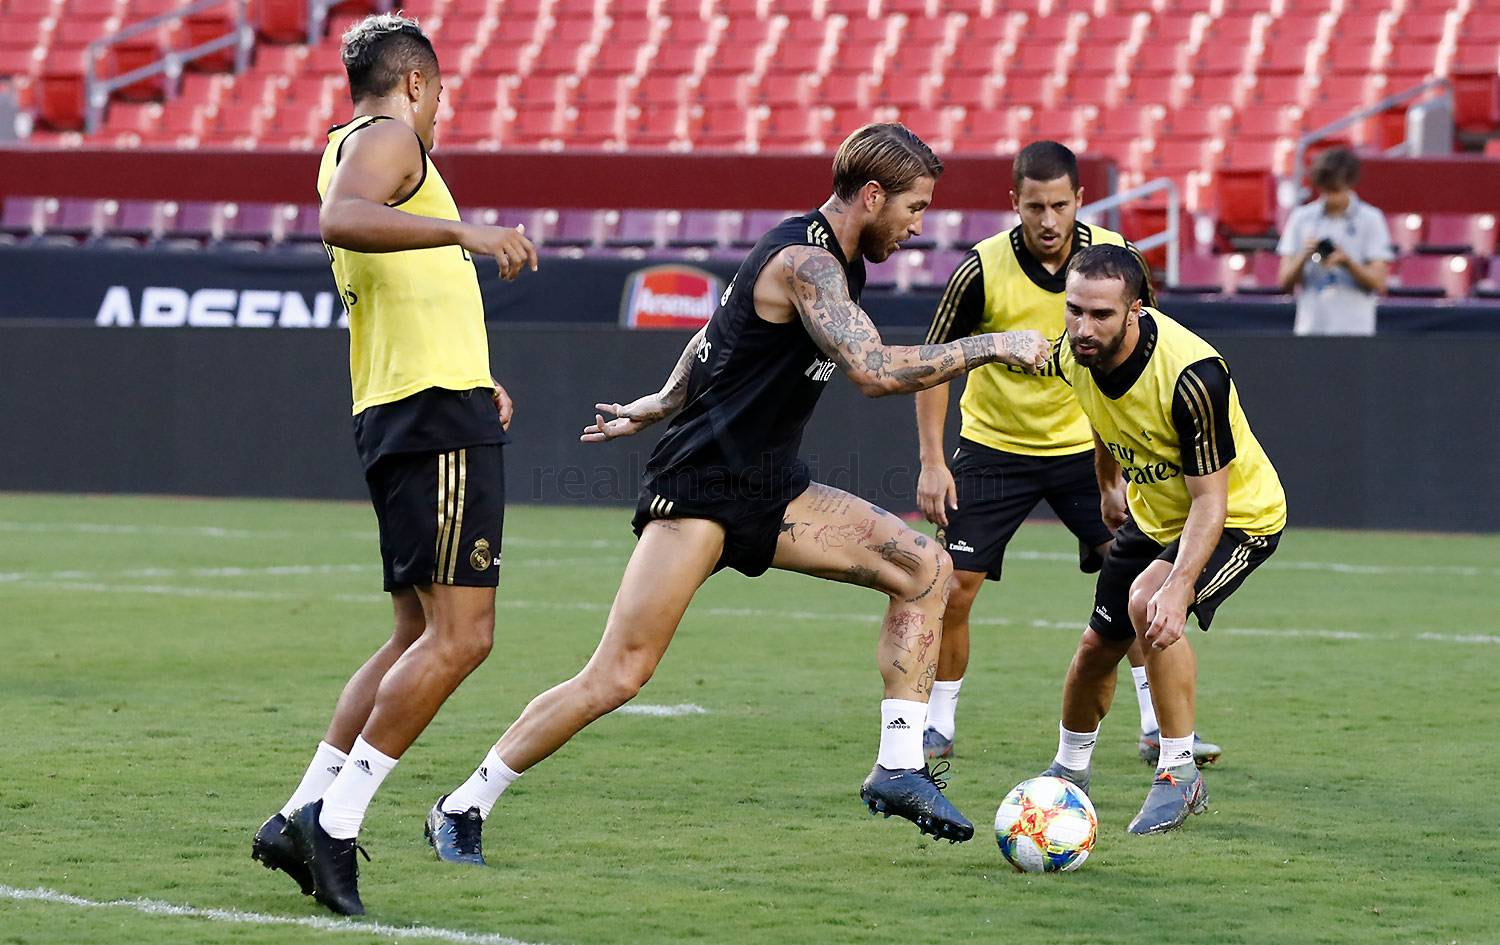 Real Madrid - Entrenamiento del Real Madrid en Landover - 22-07-2019